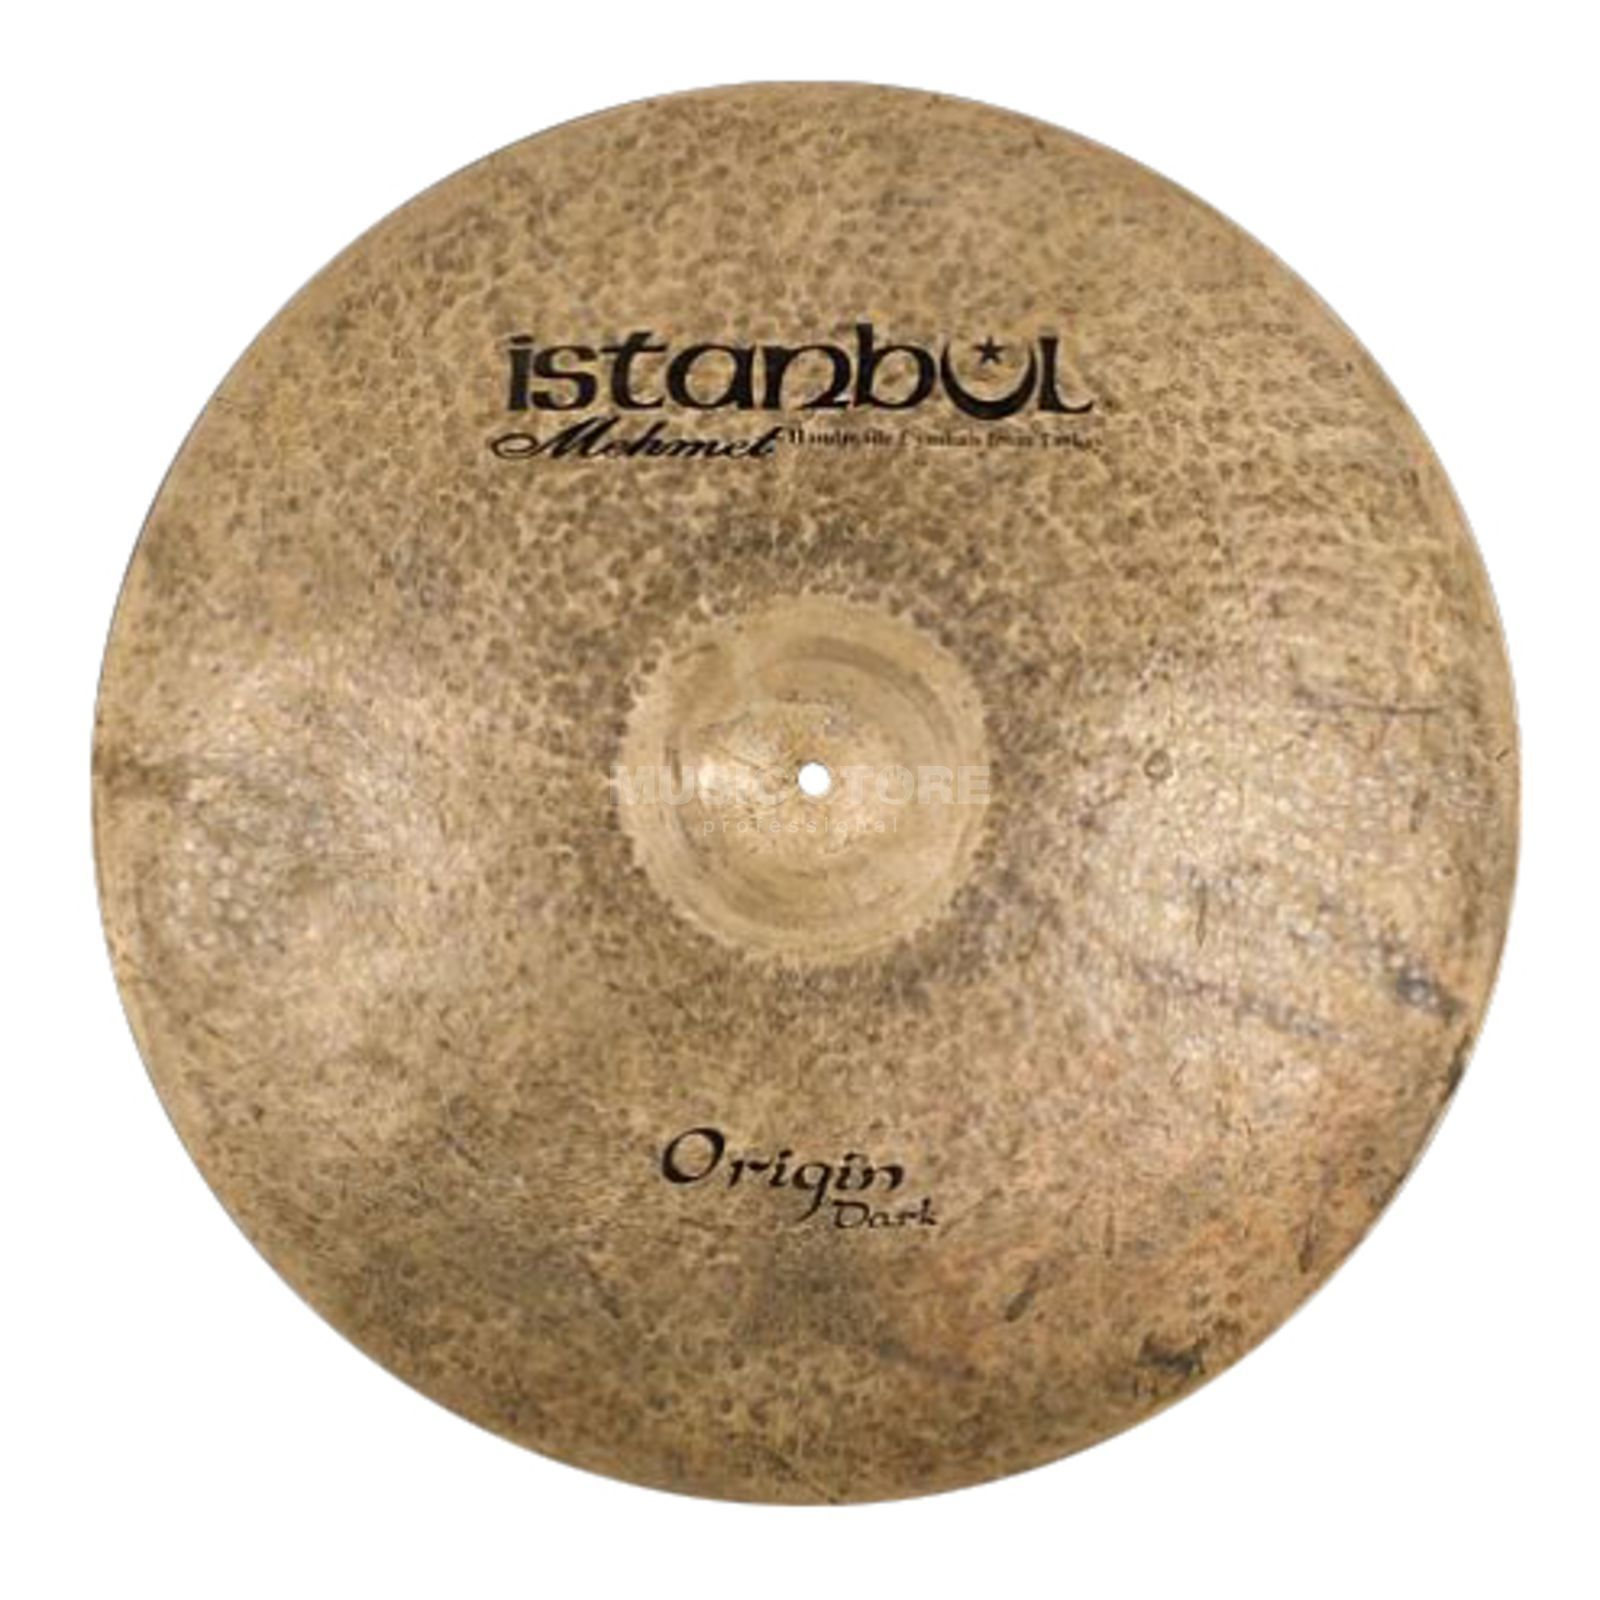 "Istanbul Origin Dark Ride 20"", OD-DR21 Product Image"